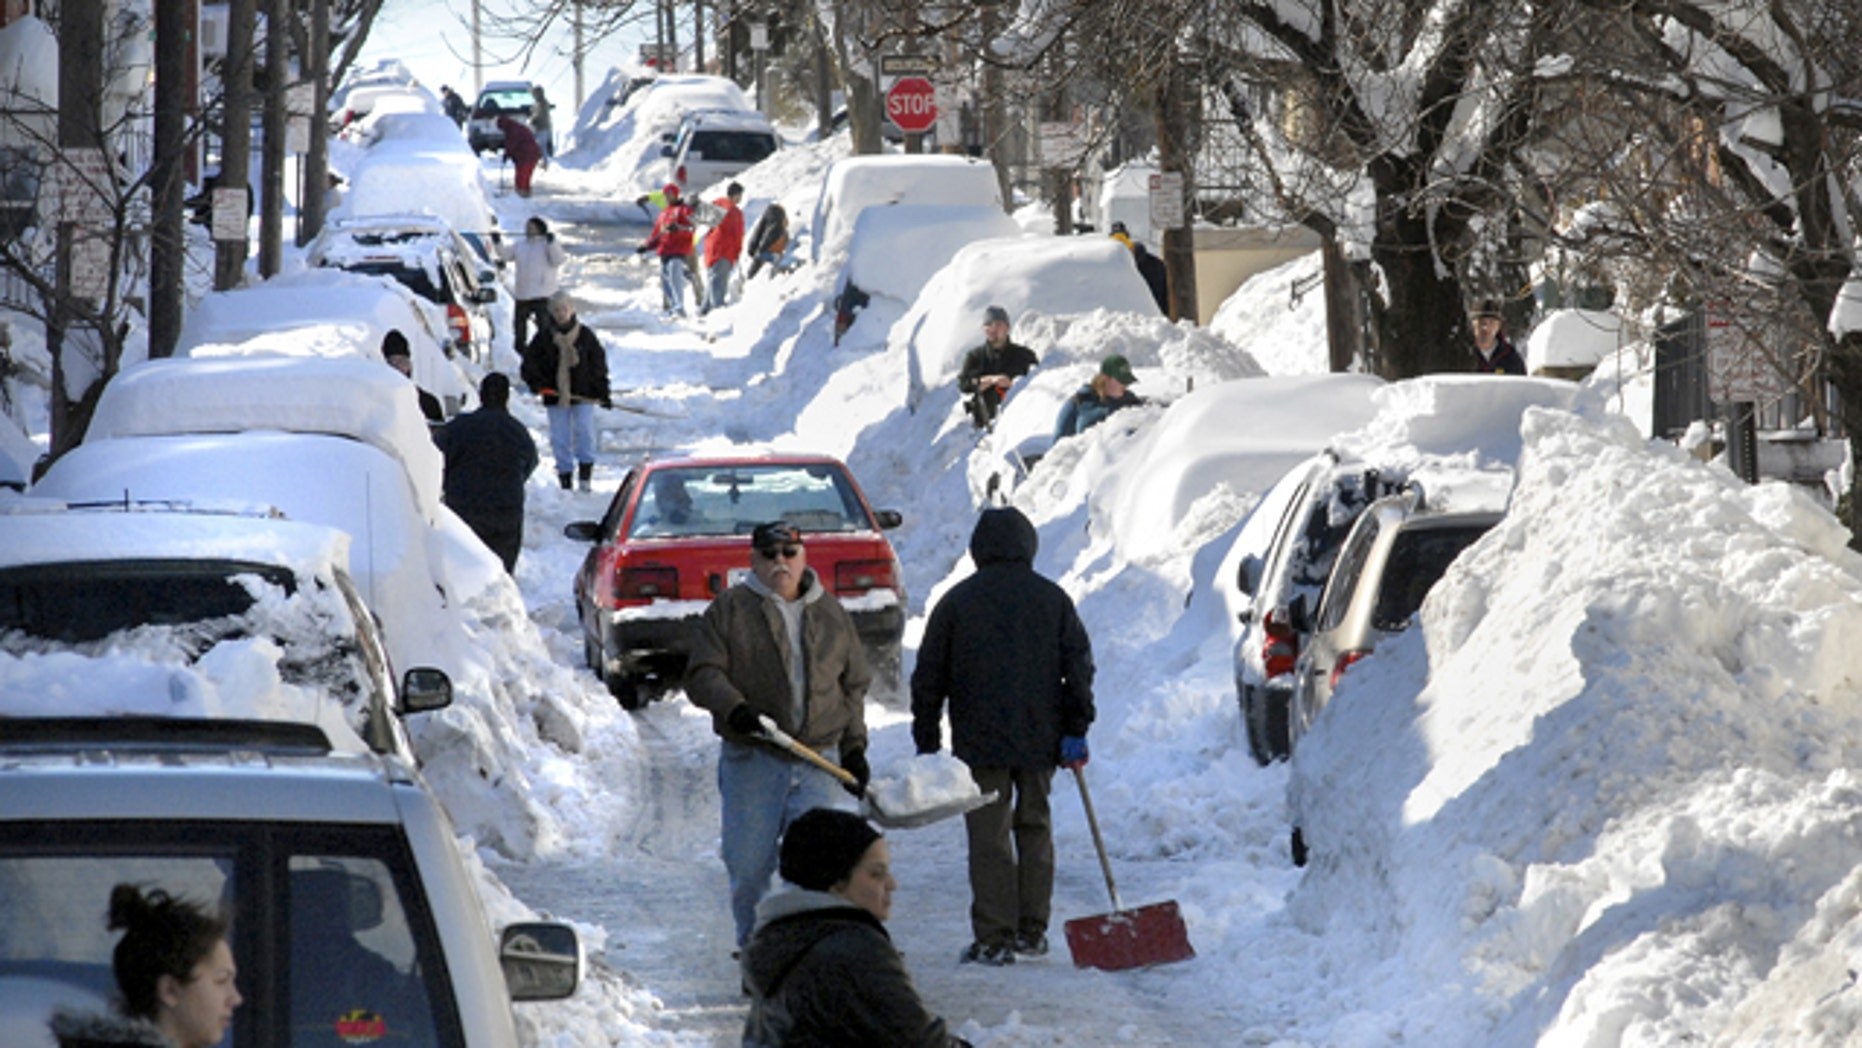 As snow-weary Pennsylvanians dug out, utilities struggled to restore power to thousands and crews worked to reopen closed roads after a record-breaking blizzard that dumped more than a foot of snow across the state.